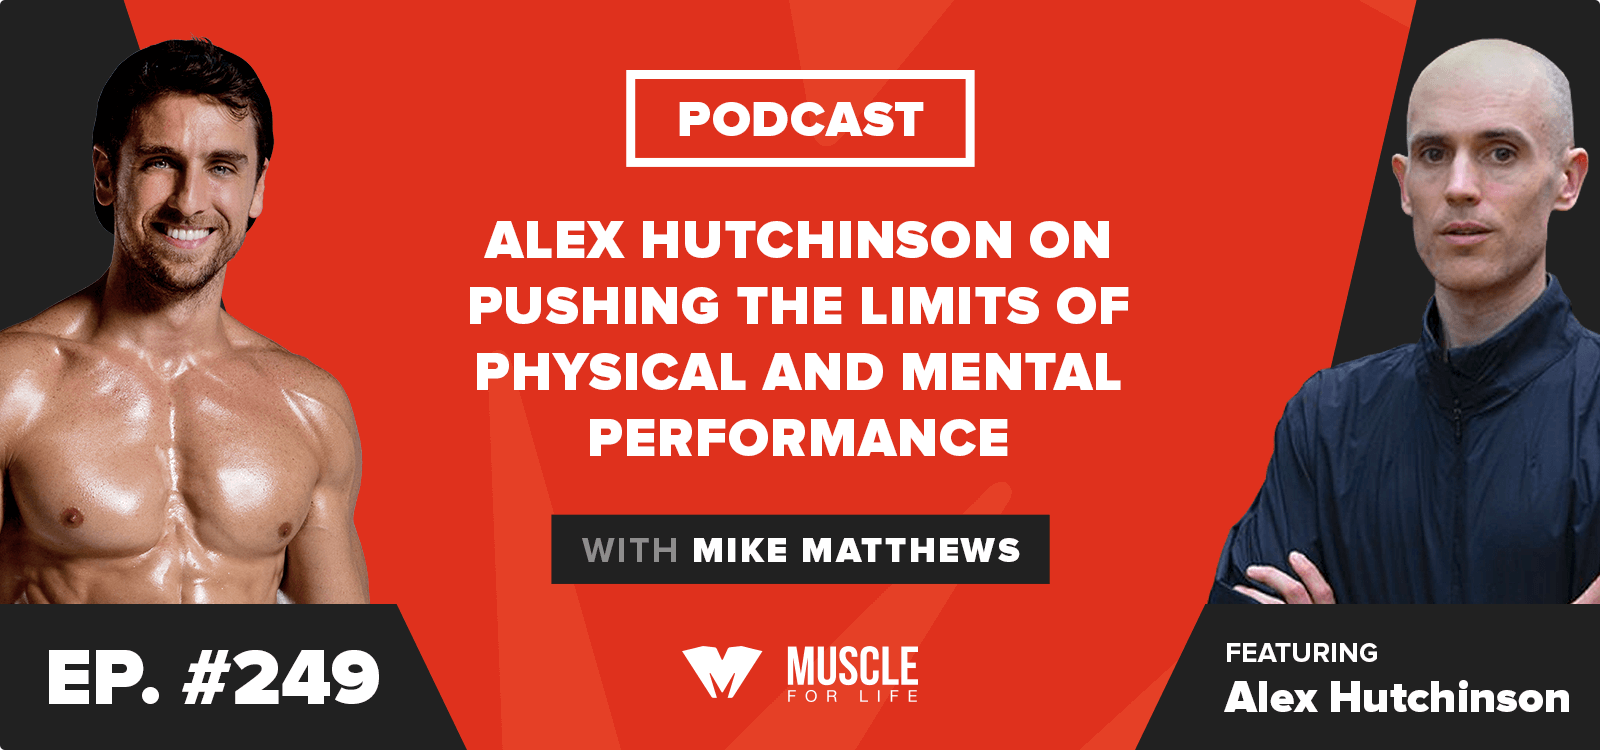 Alex Hutchinson on Pushing the Limits of Physical and Mental Performance